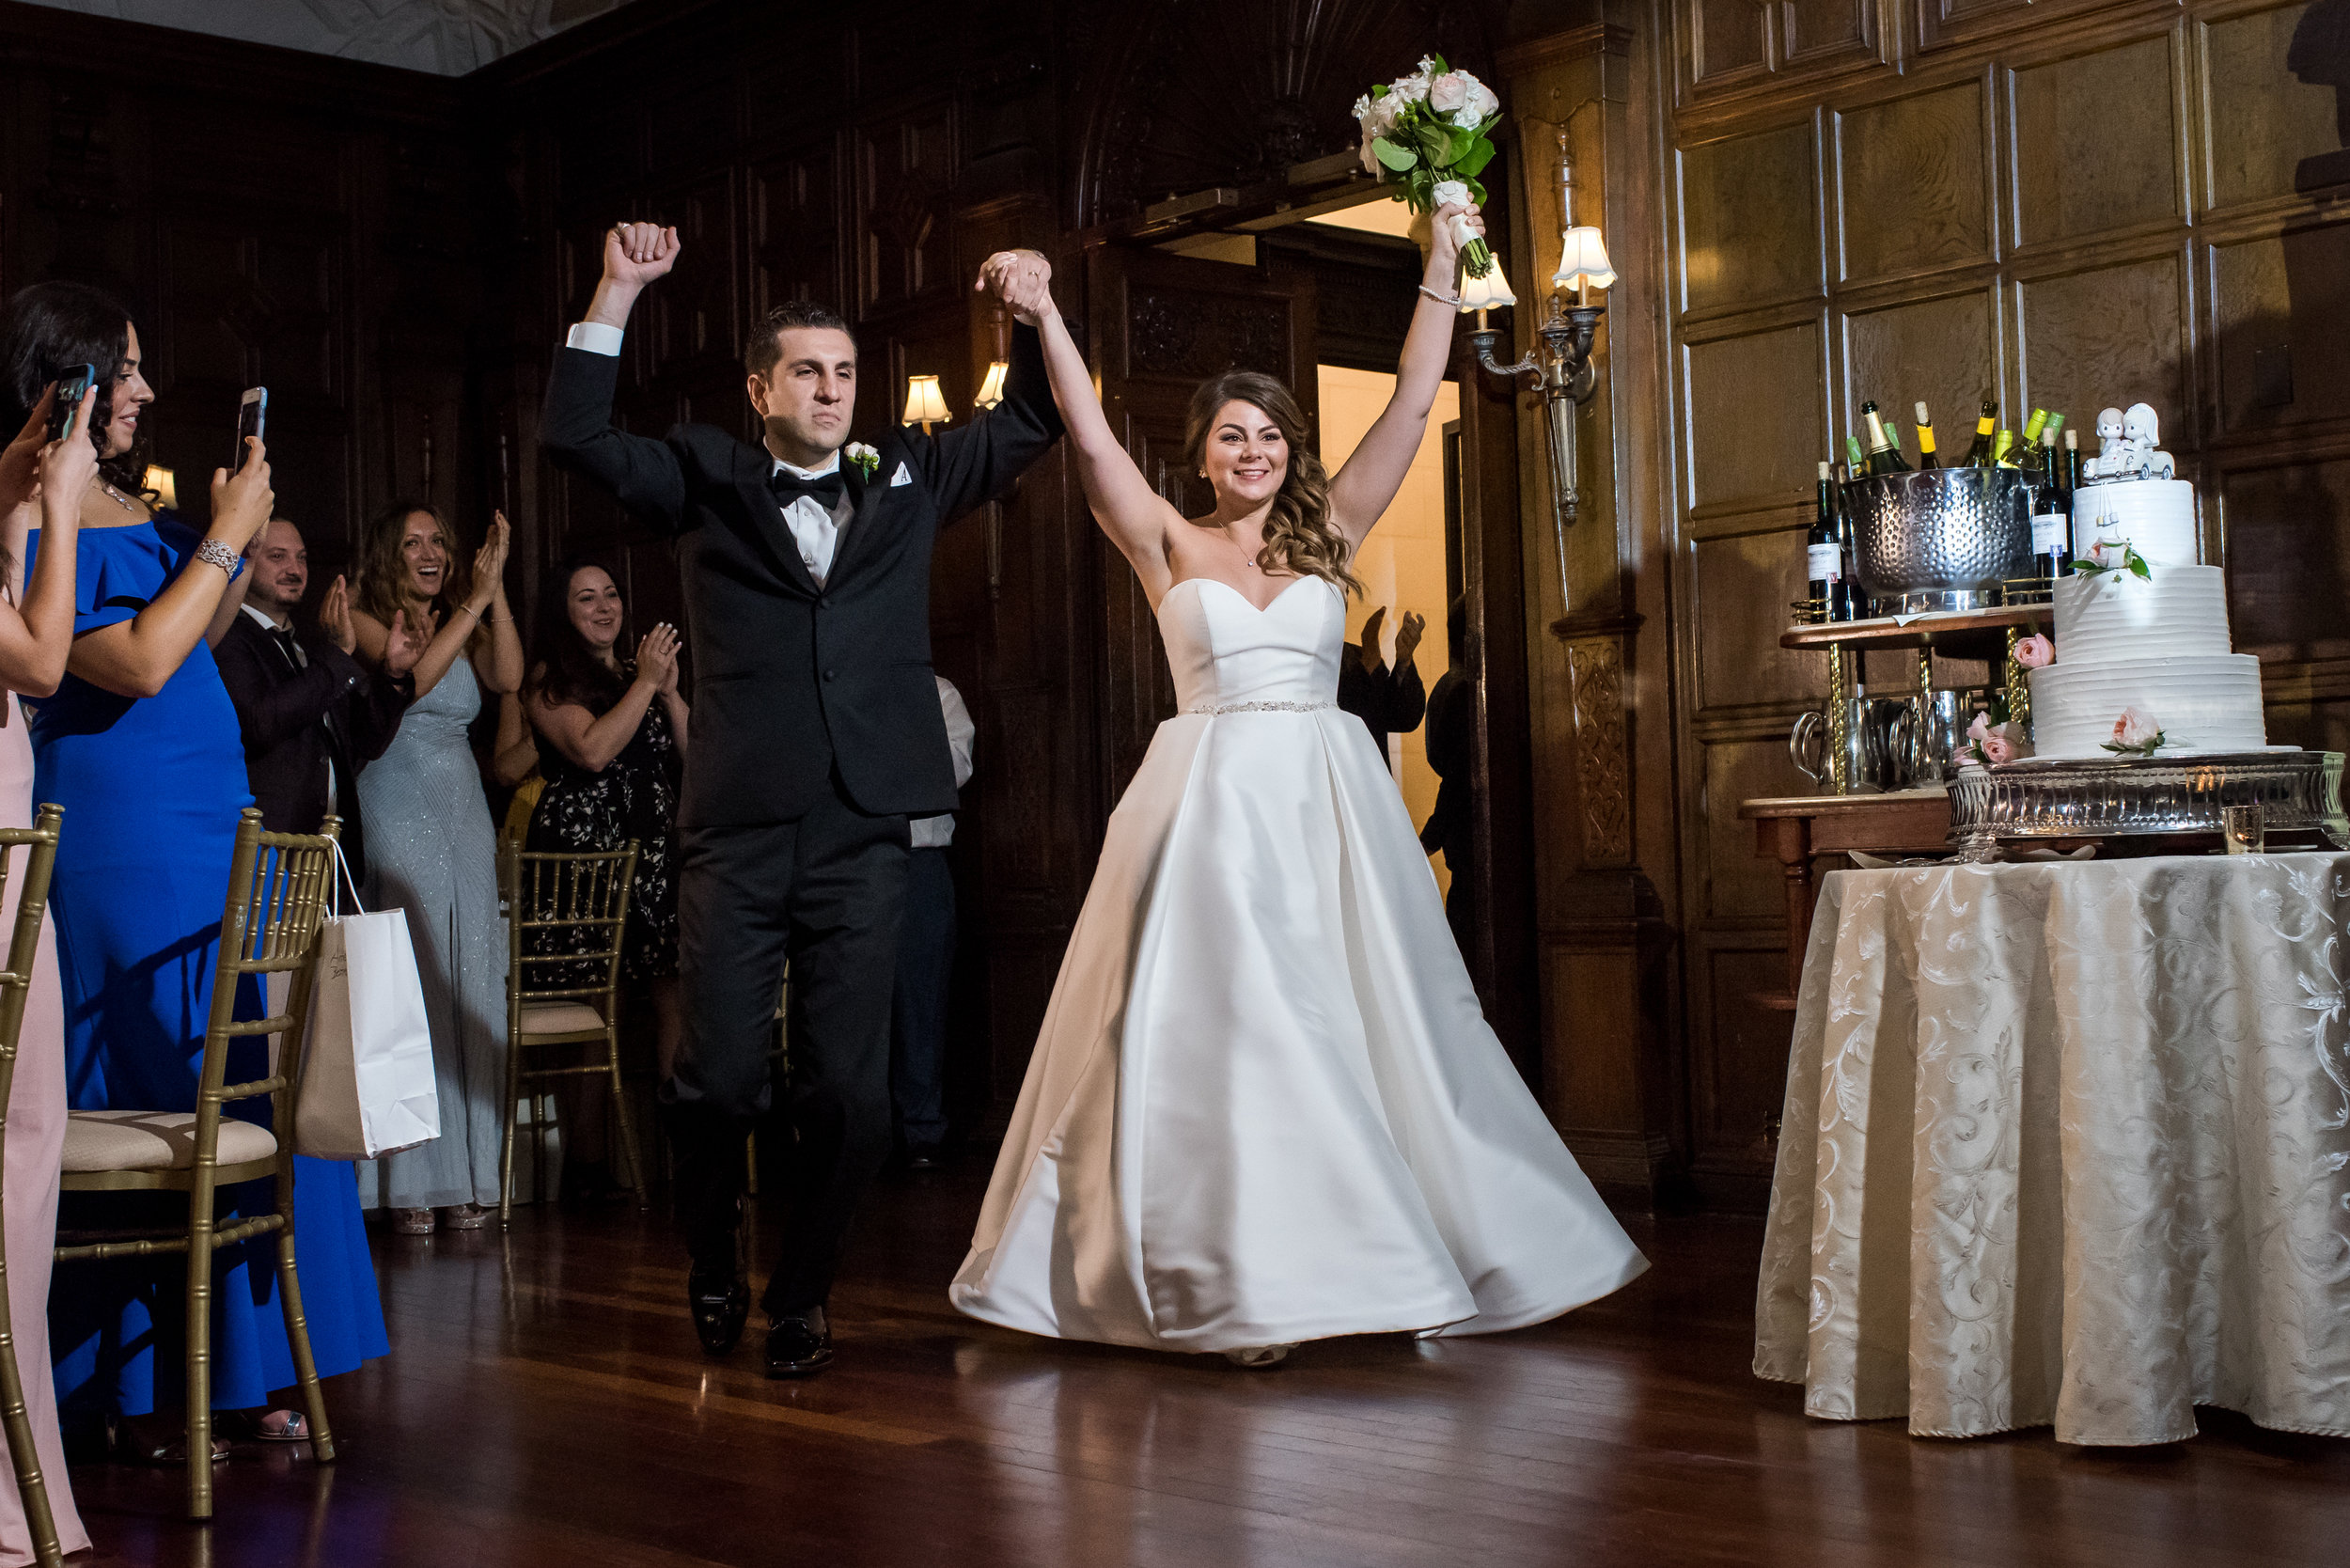 Stefy Hilmer Photography-bride and groom entering ball room.jpg